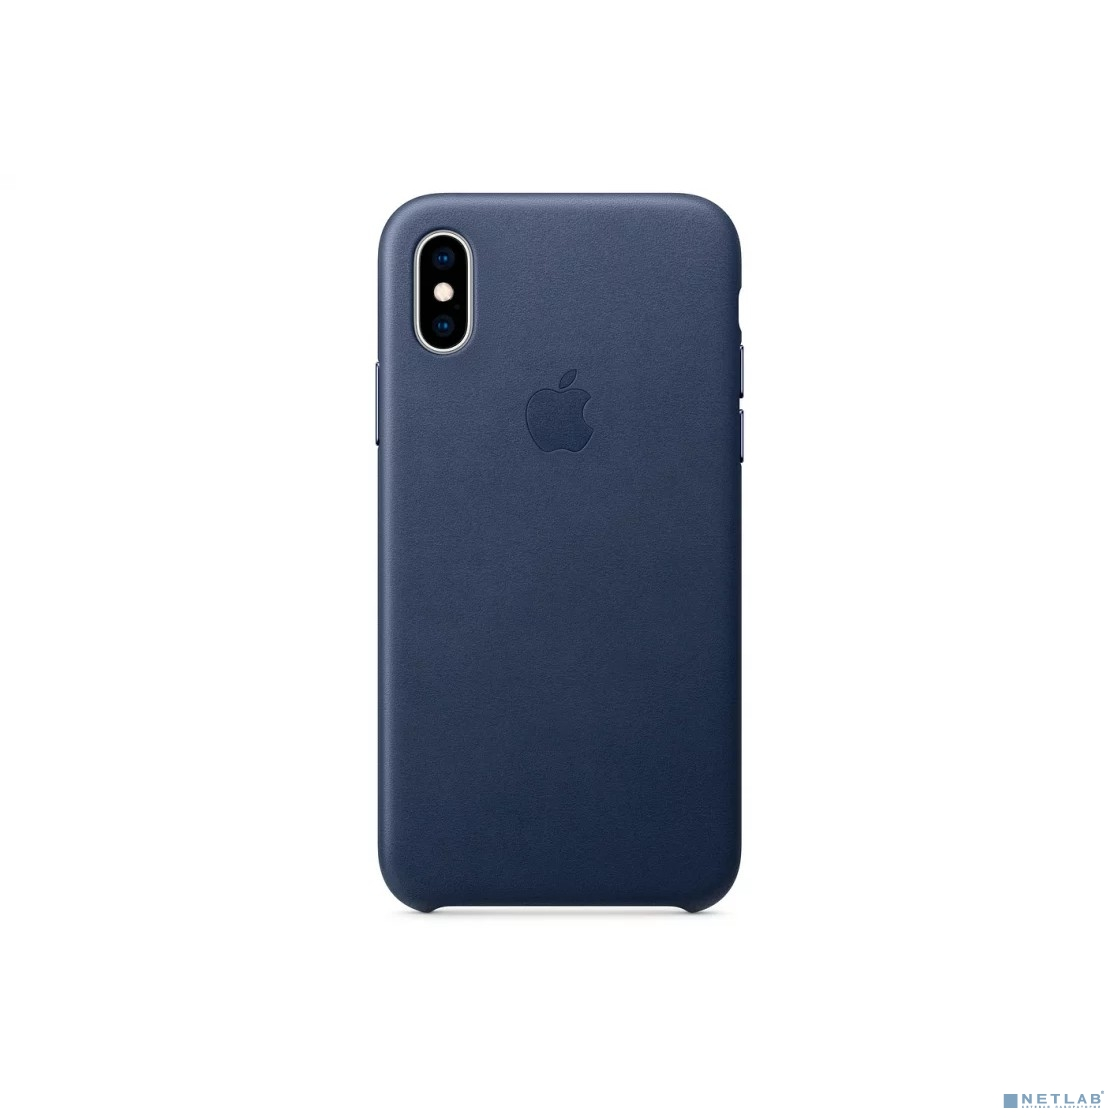 iPhone XS Leather Case - Midnight Blue [MRWN2ZM/A]